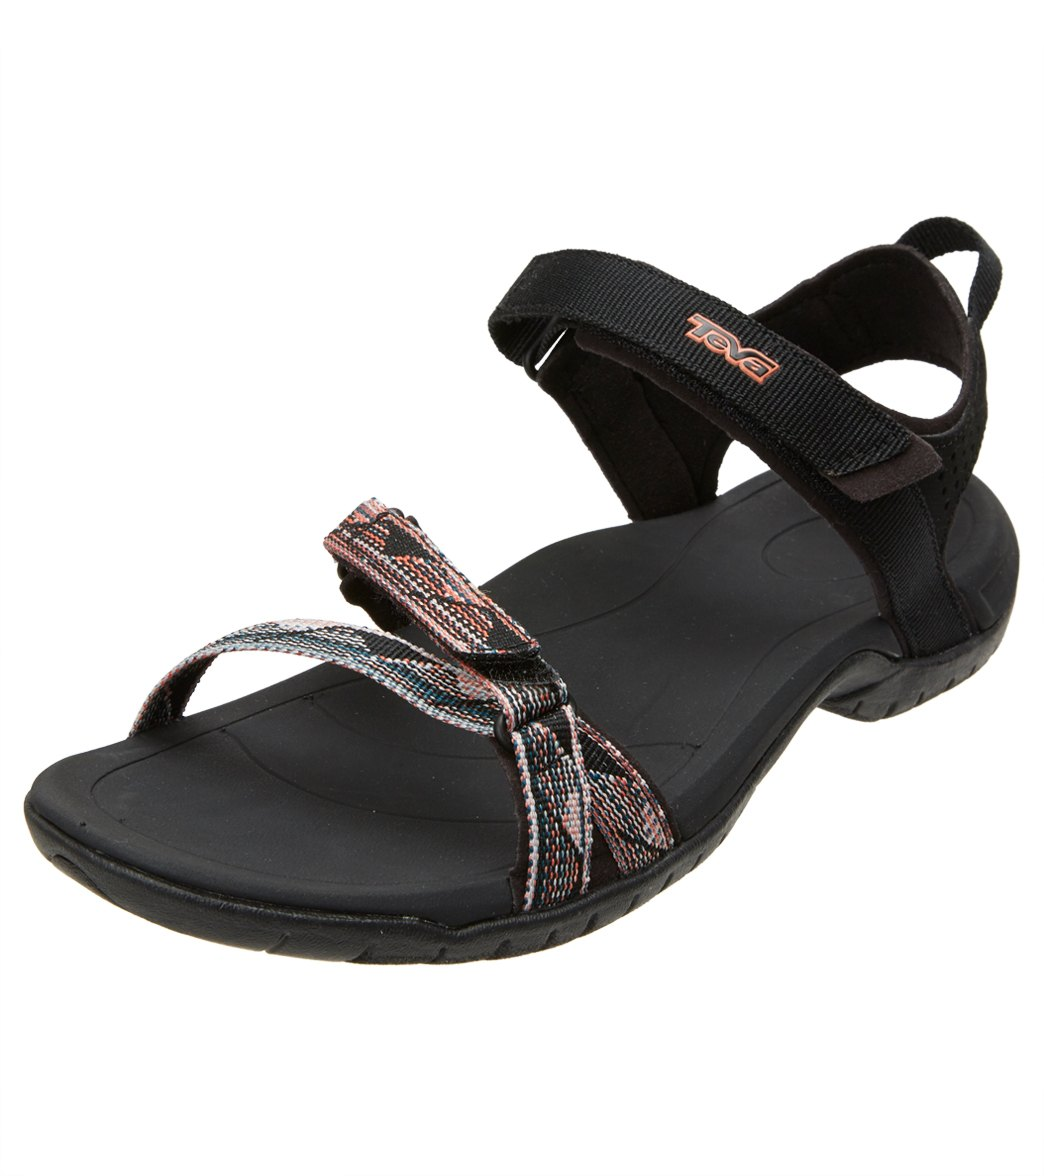 632205065815 Teva Women s Verra Sandal at SwimOutlet.com - Free Shipping